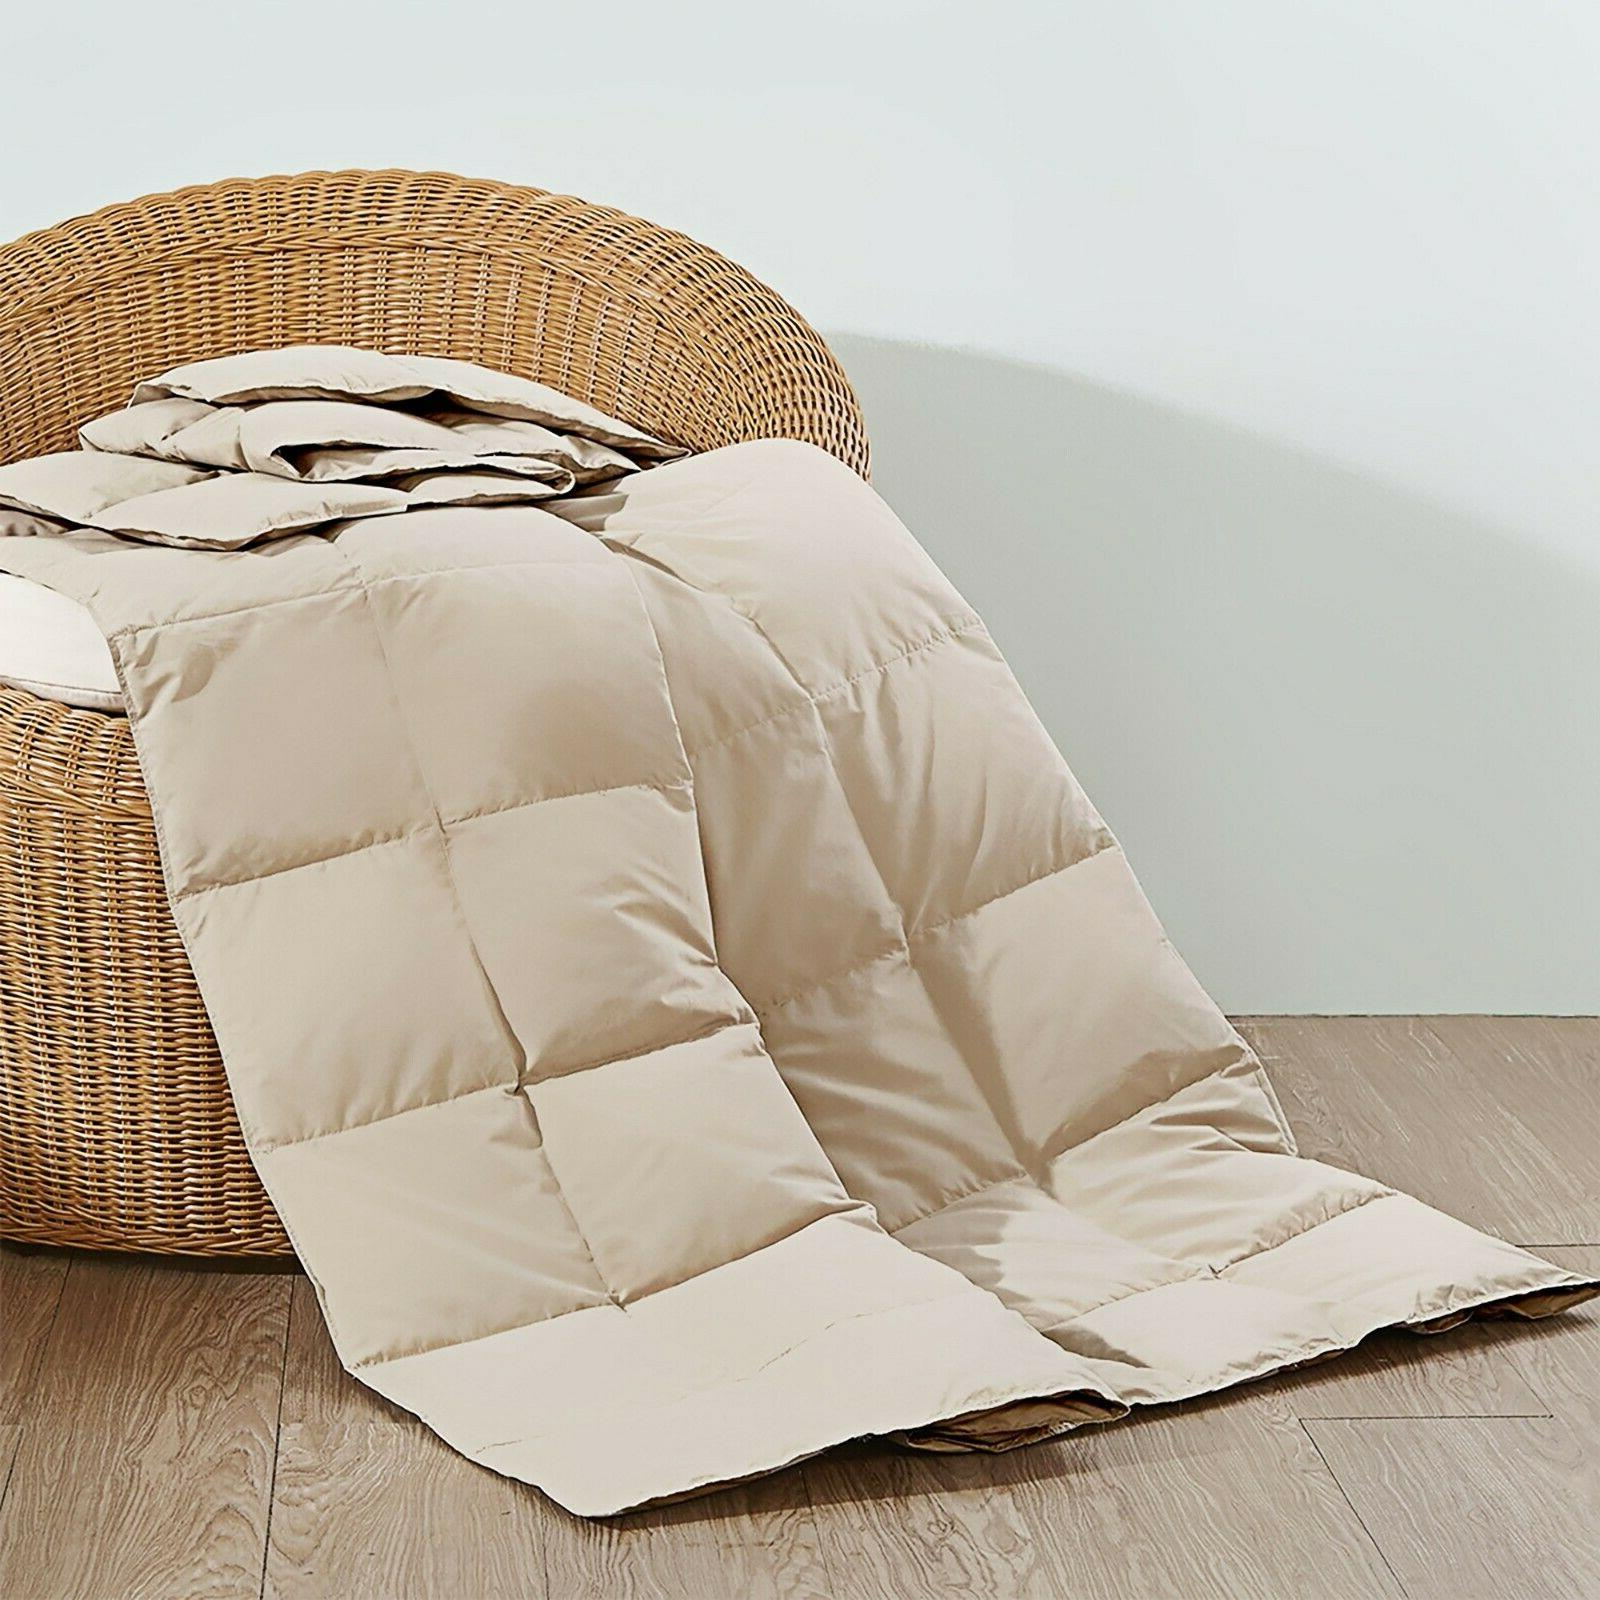 Natural UltraFeather Lightweight 30% Down Throw Blanket Down